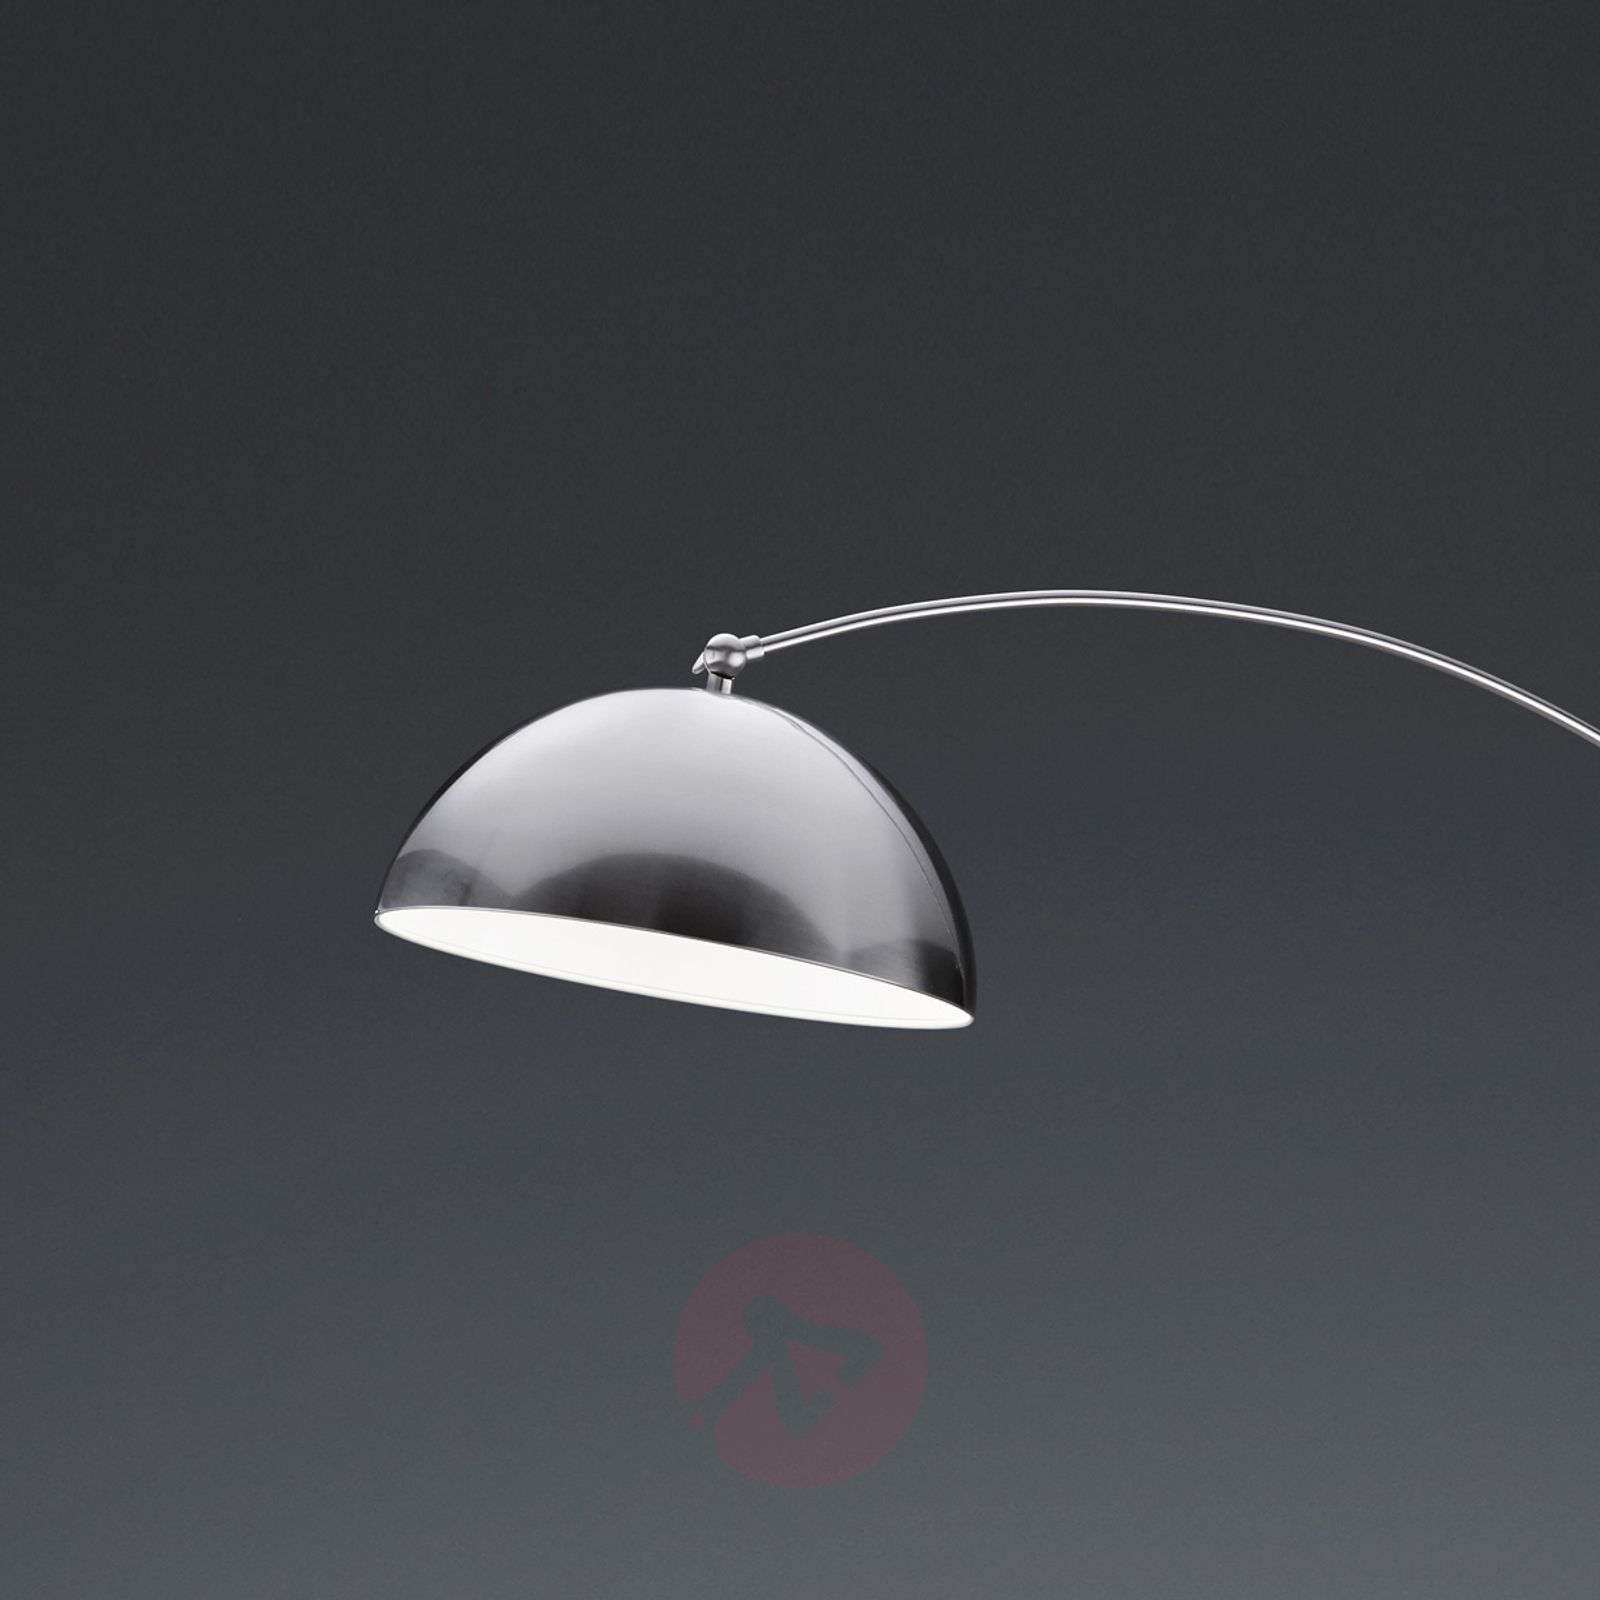 LED arc lamp Florestan with built-in dimmer-9005003-01